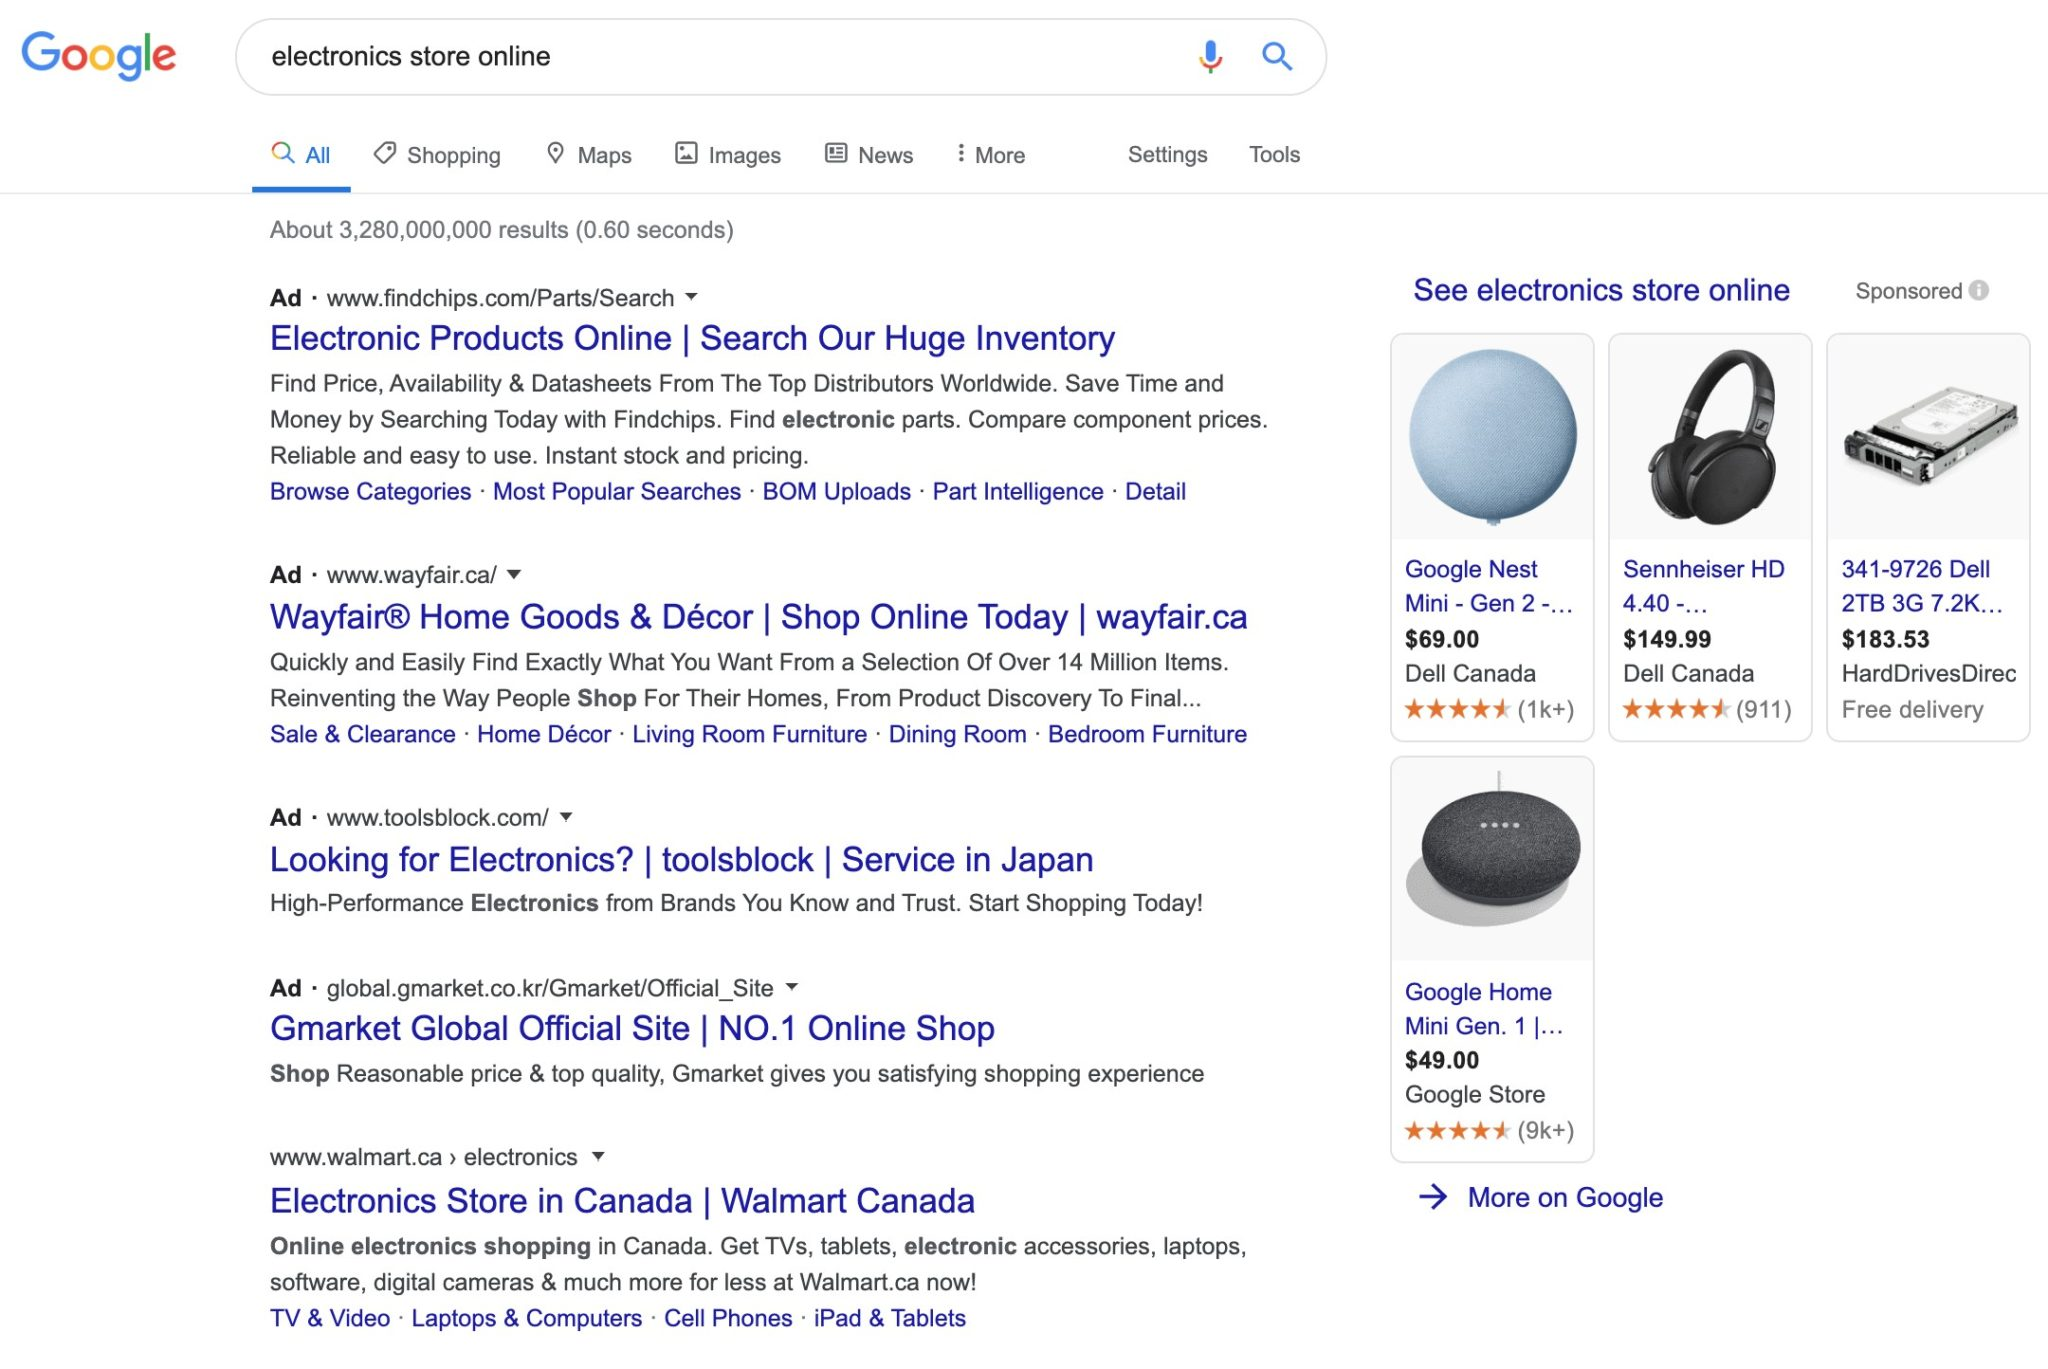 SERPs for Electronics